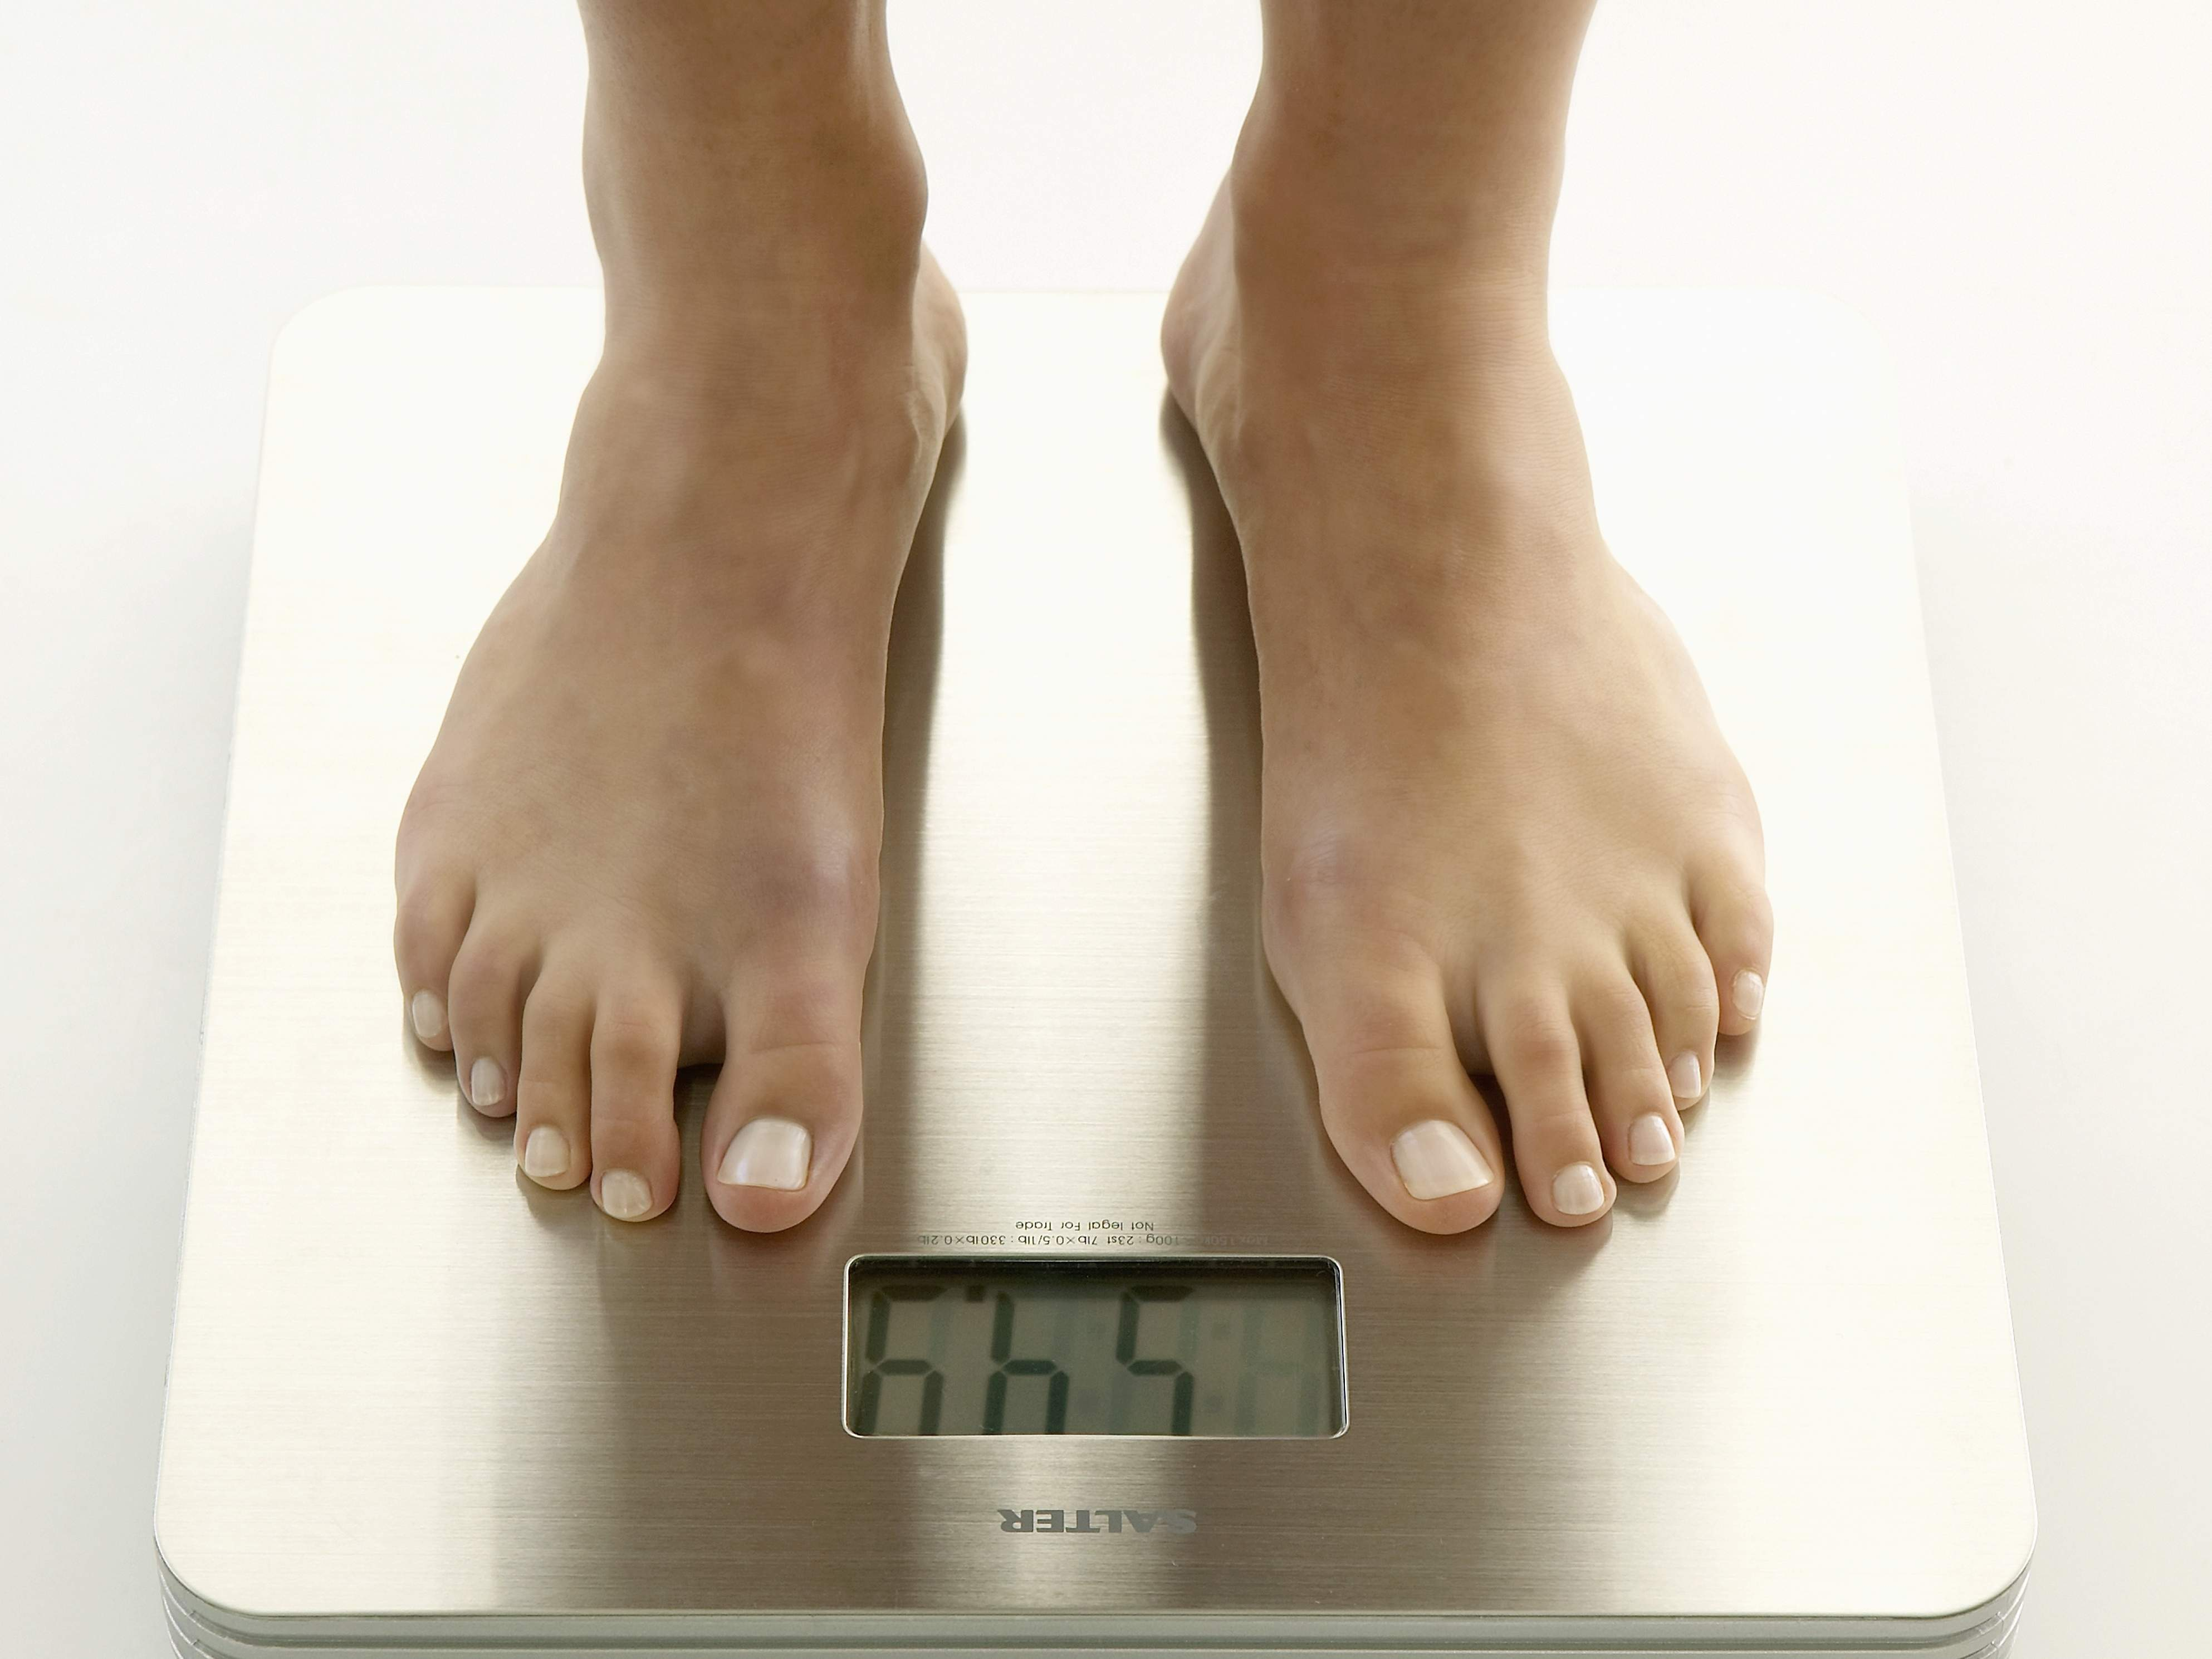 Forskolin Is A Weight Loss Supplement With Good Science To Support It